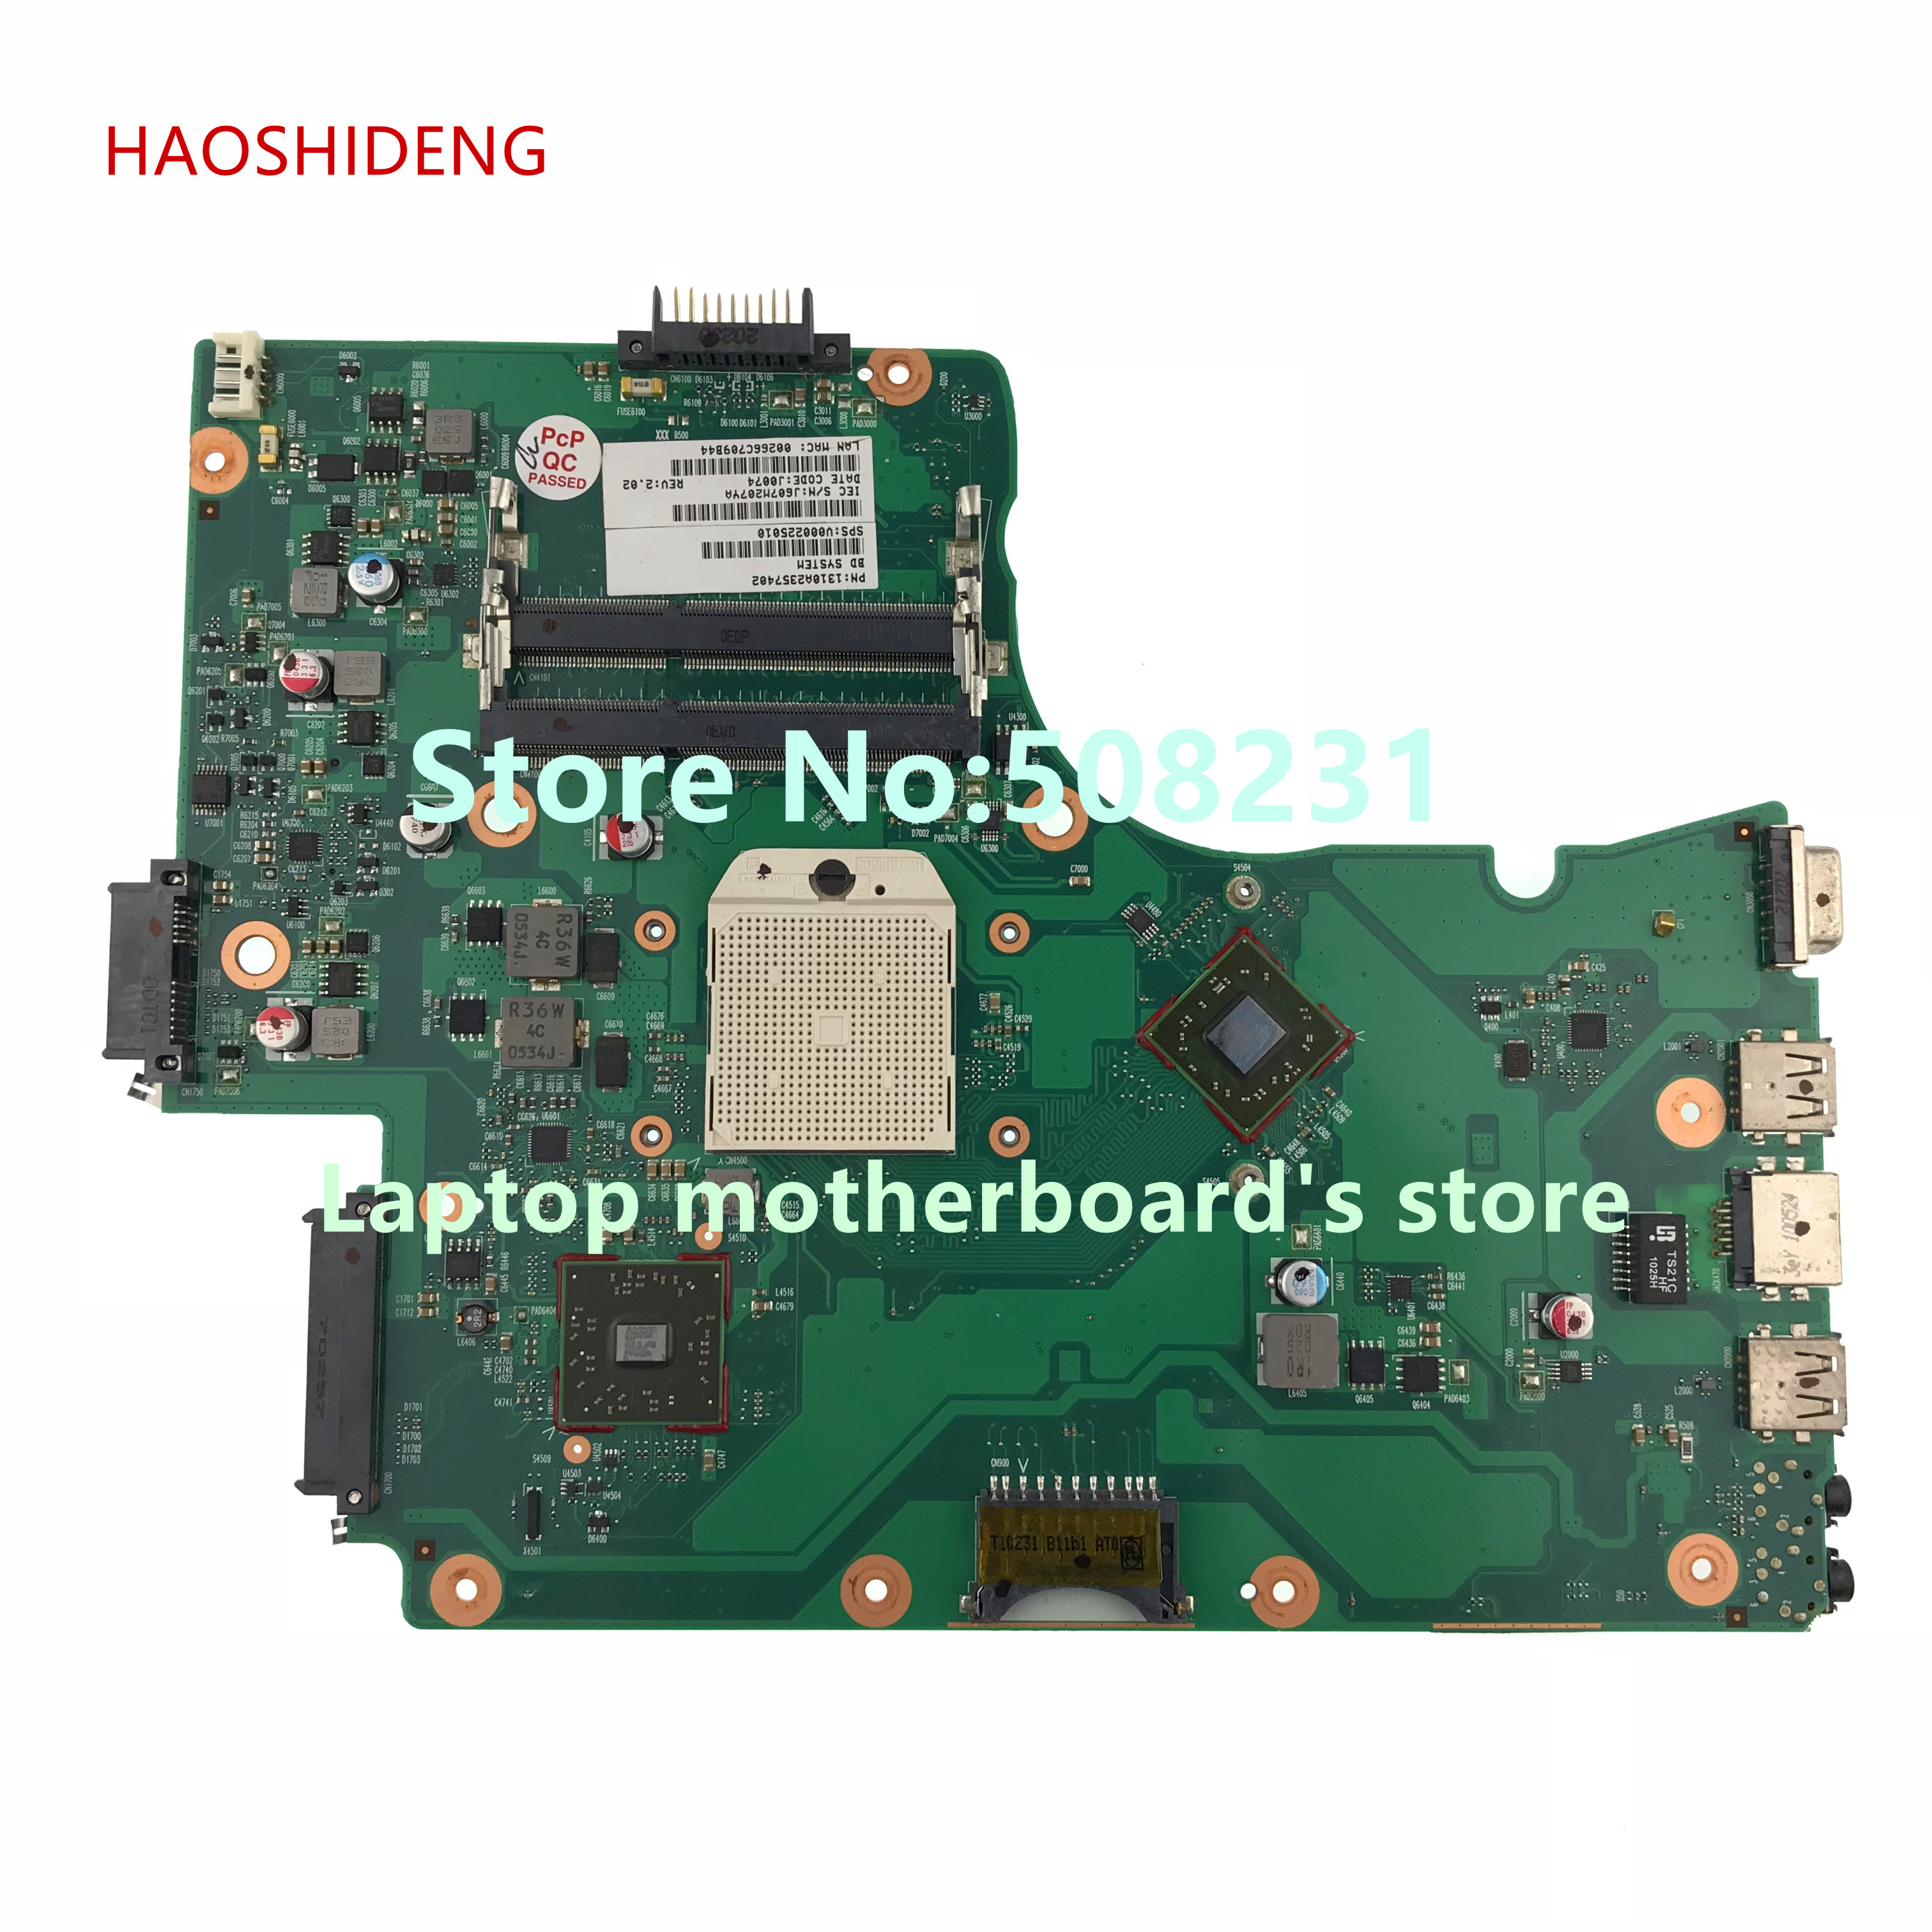 HAOSHIDENG V000225010 mainboard For Toshiba Satellite C650D C655D laptop motherboard 6050A2357401-MB-A02 dk10f 6050a2541801 mb a02